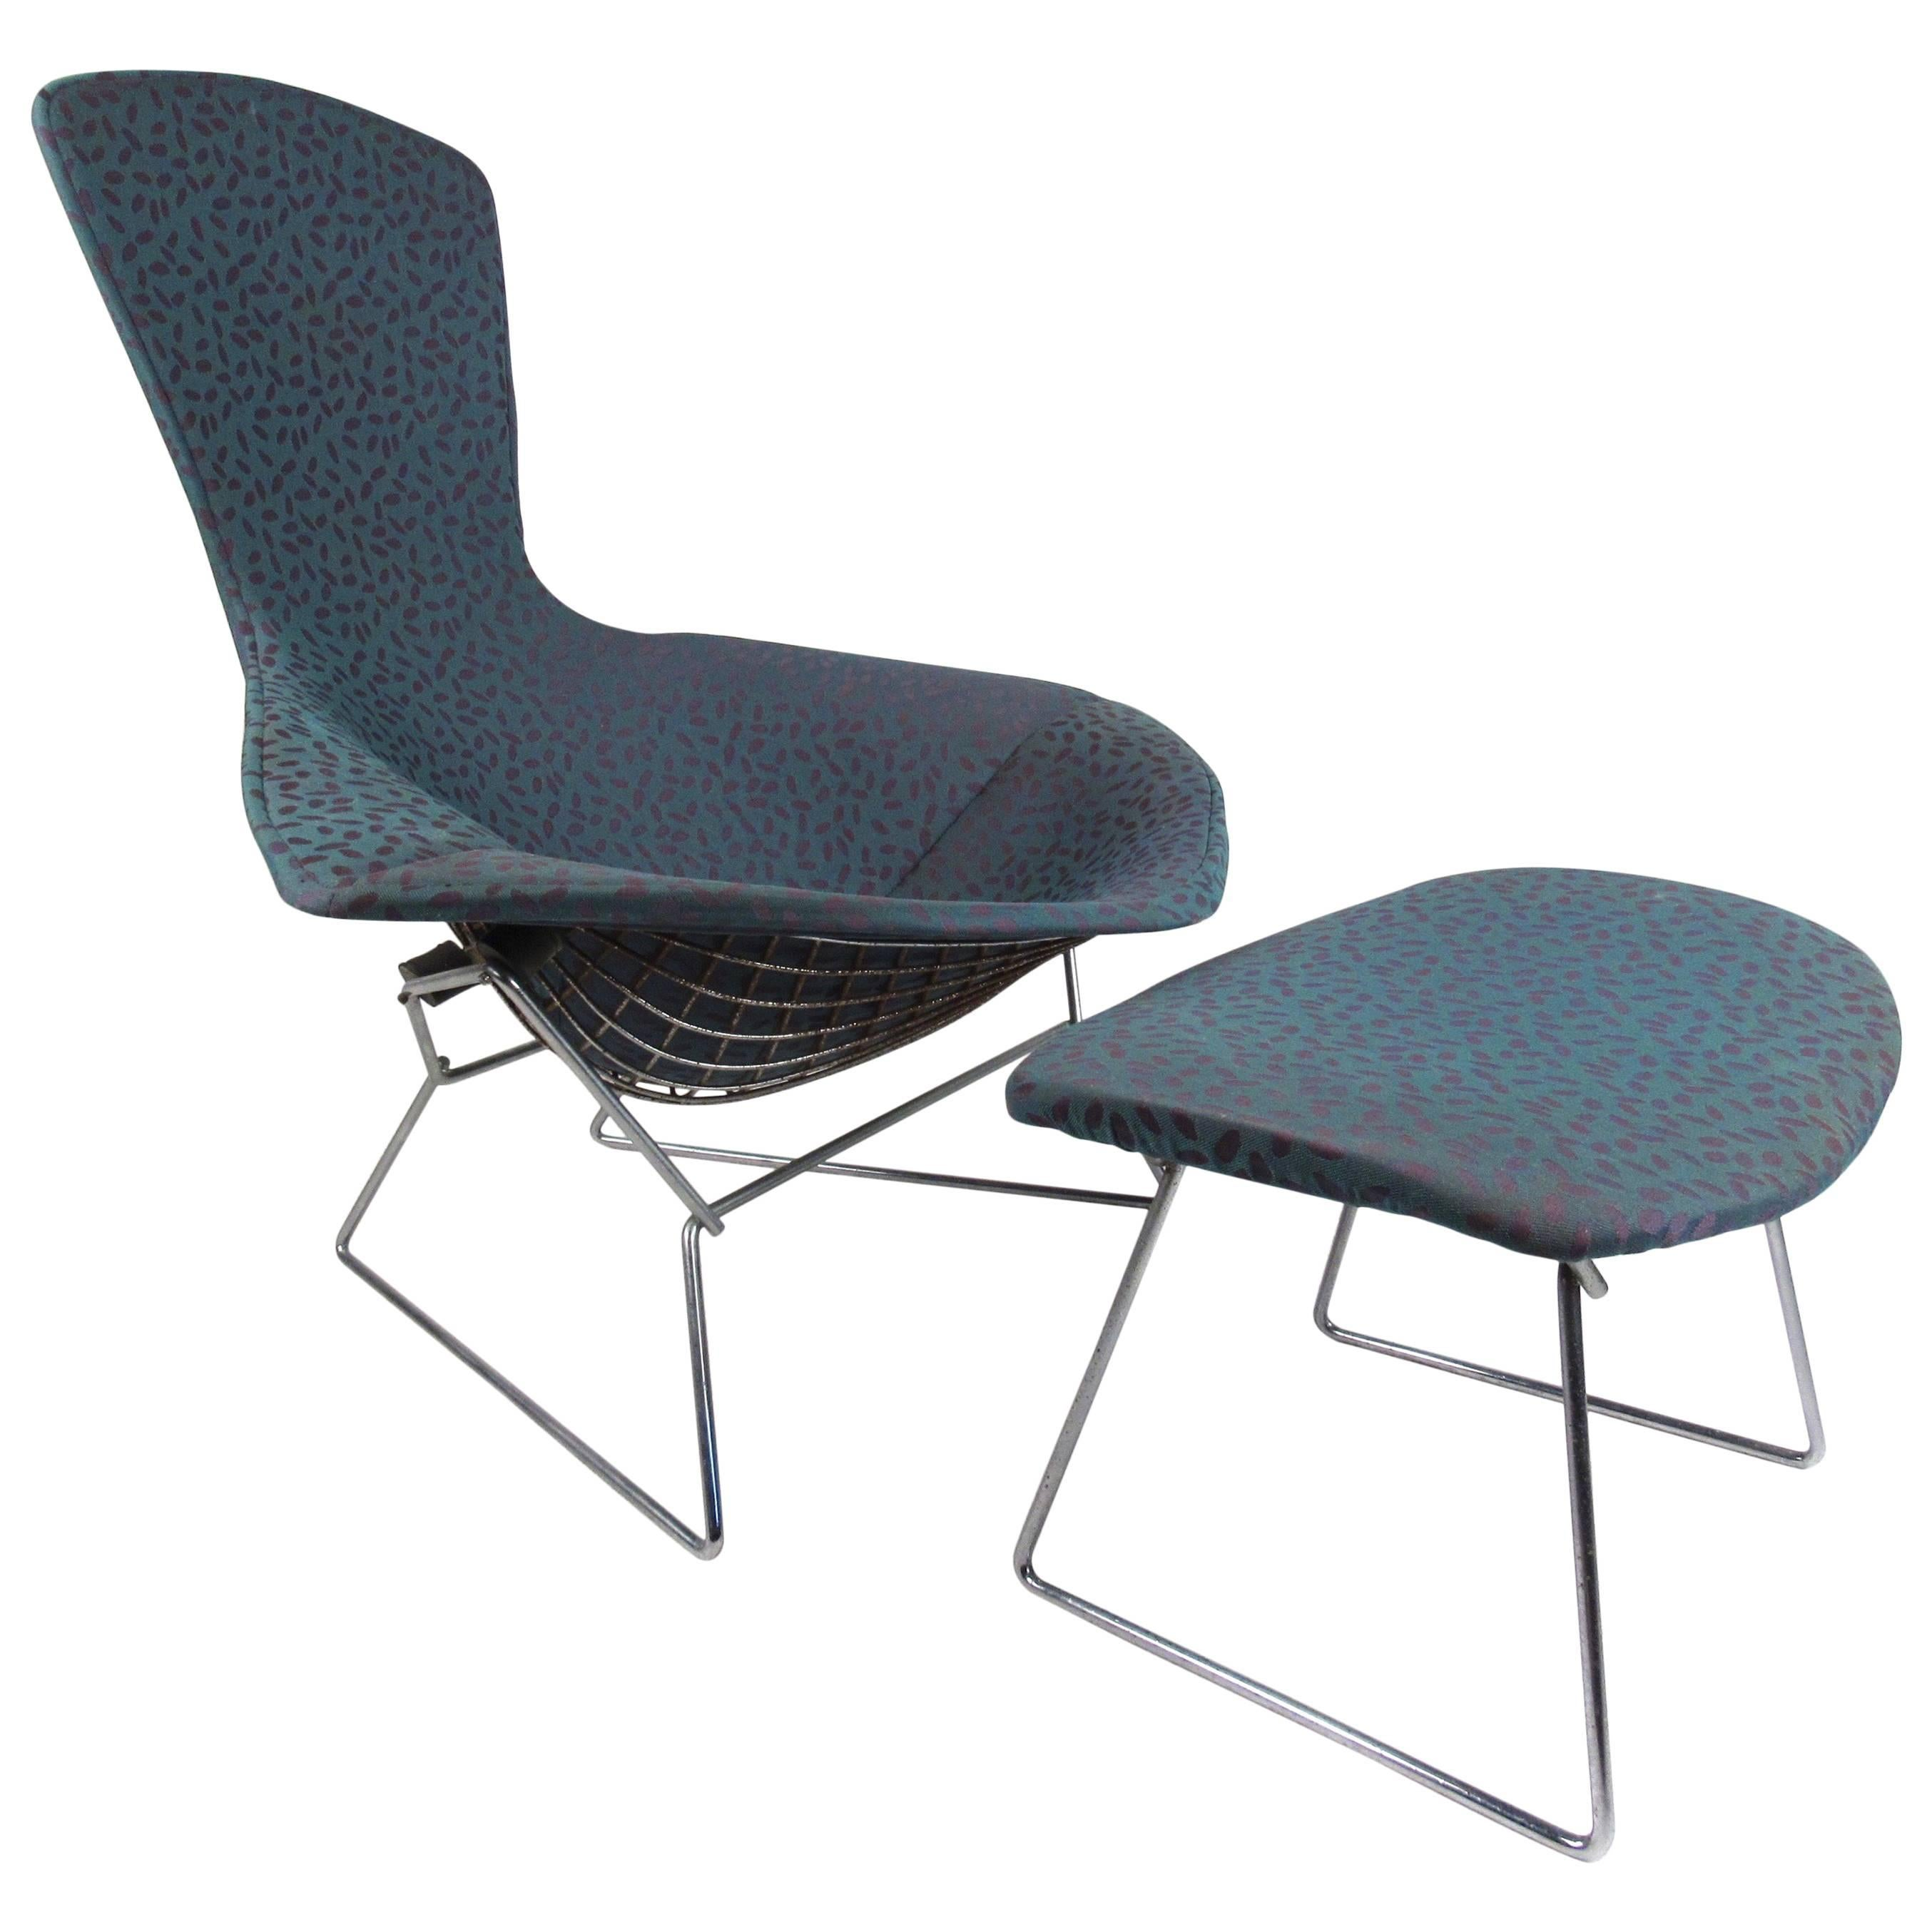 """Harry Bertoia """"Bird"""" Chair with Ottoman by Knoll Furniture"""